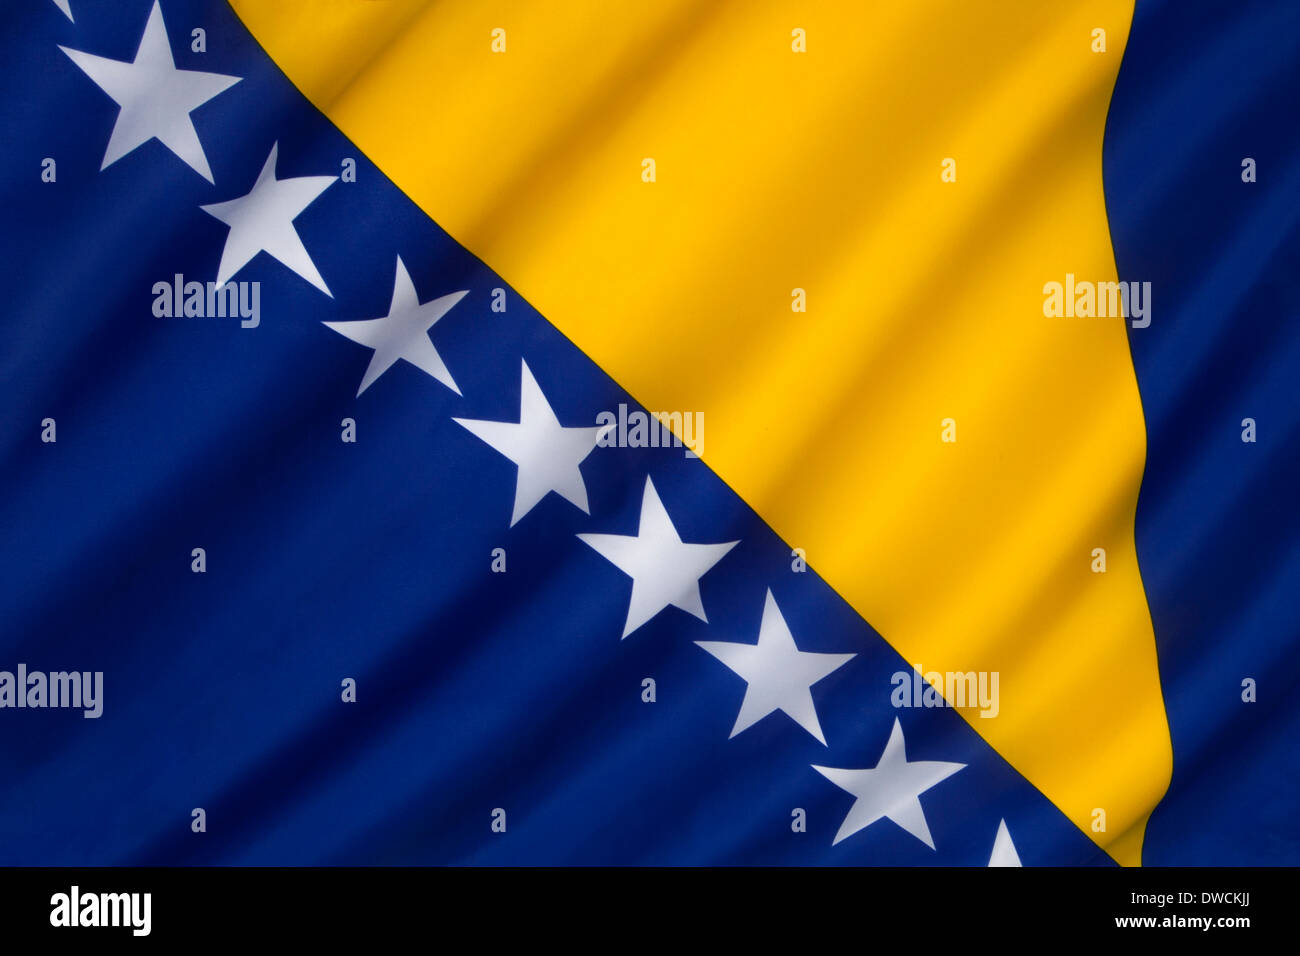 Flag of Bosnia and Herzegovina Stock Photo